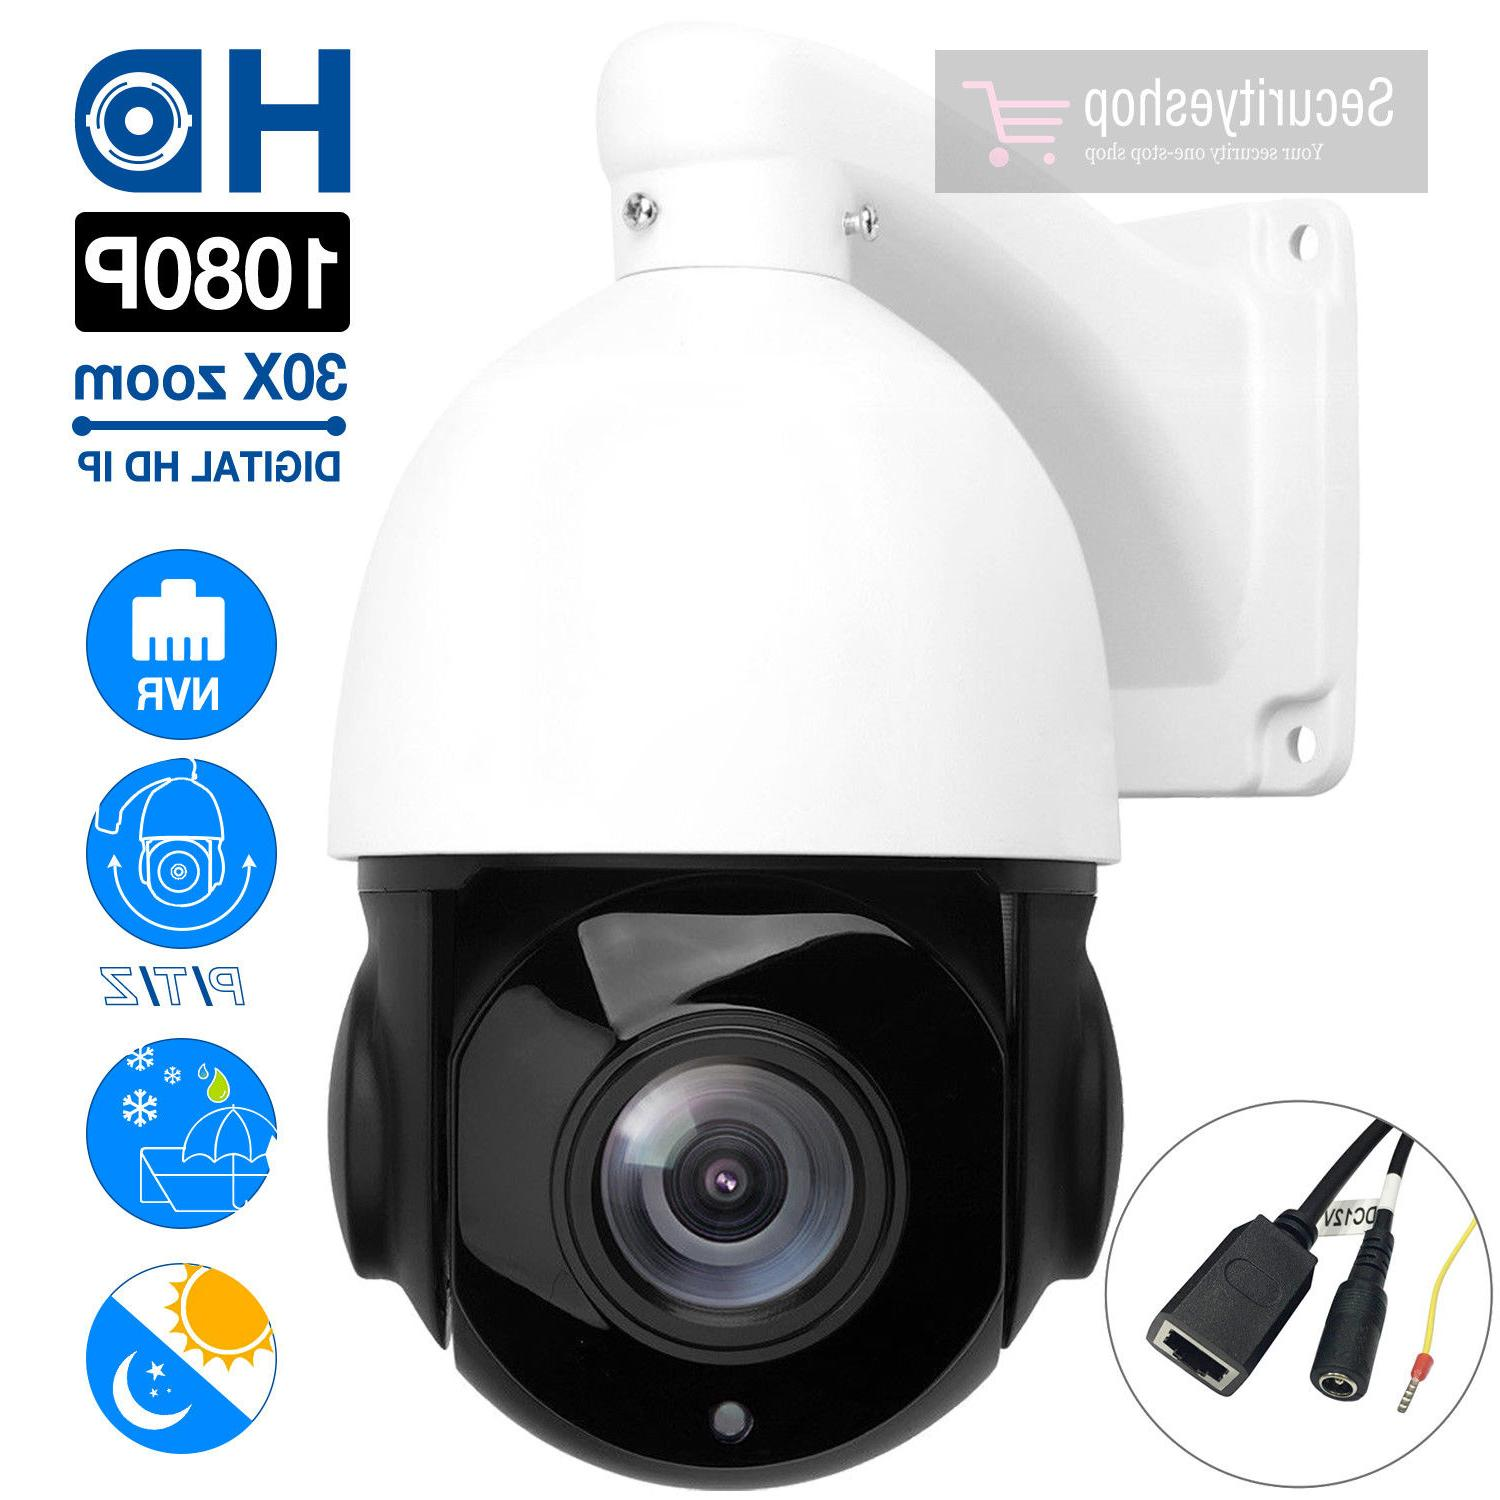 HD 1080p PTZ Outdoor Speed Dome IP Pan Tilt 30X Zoom IR Netw